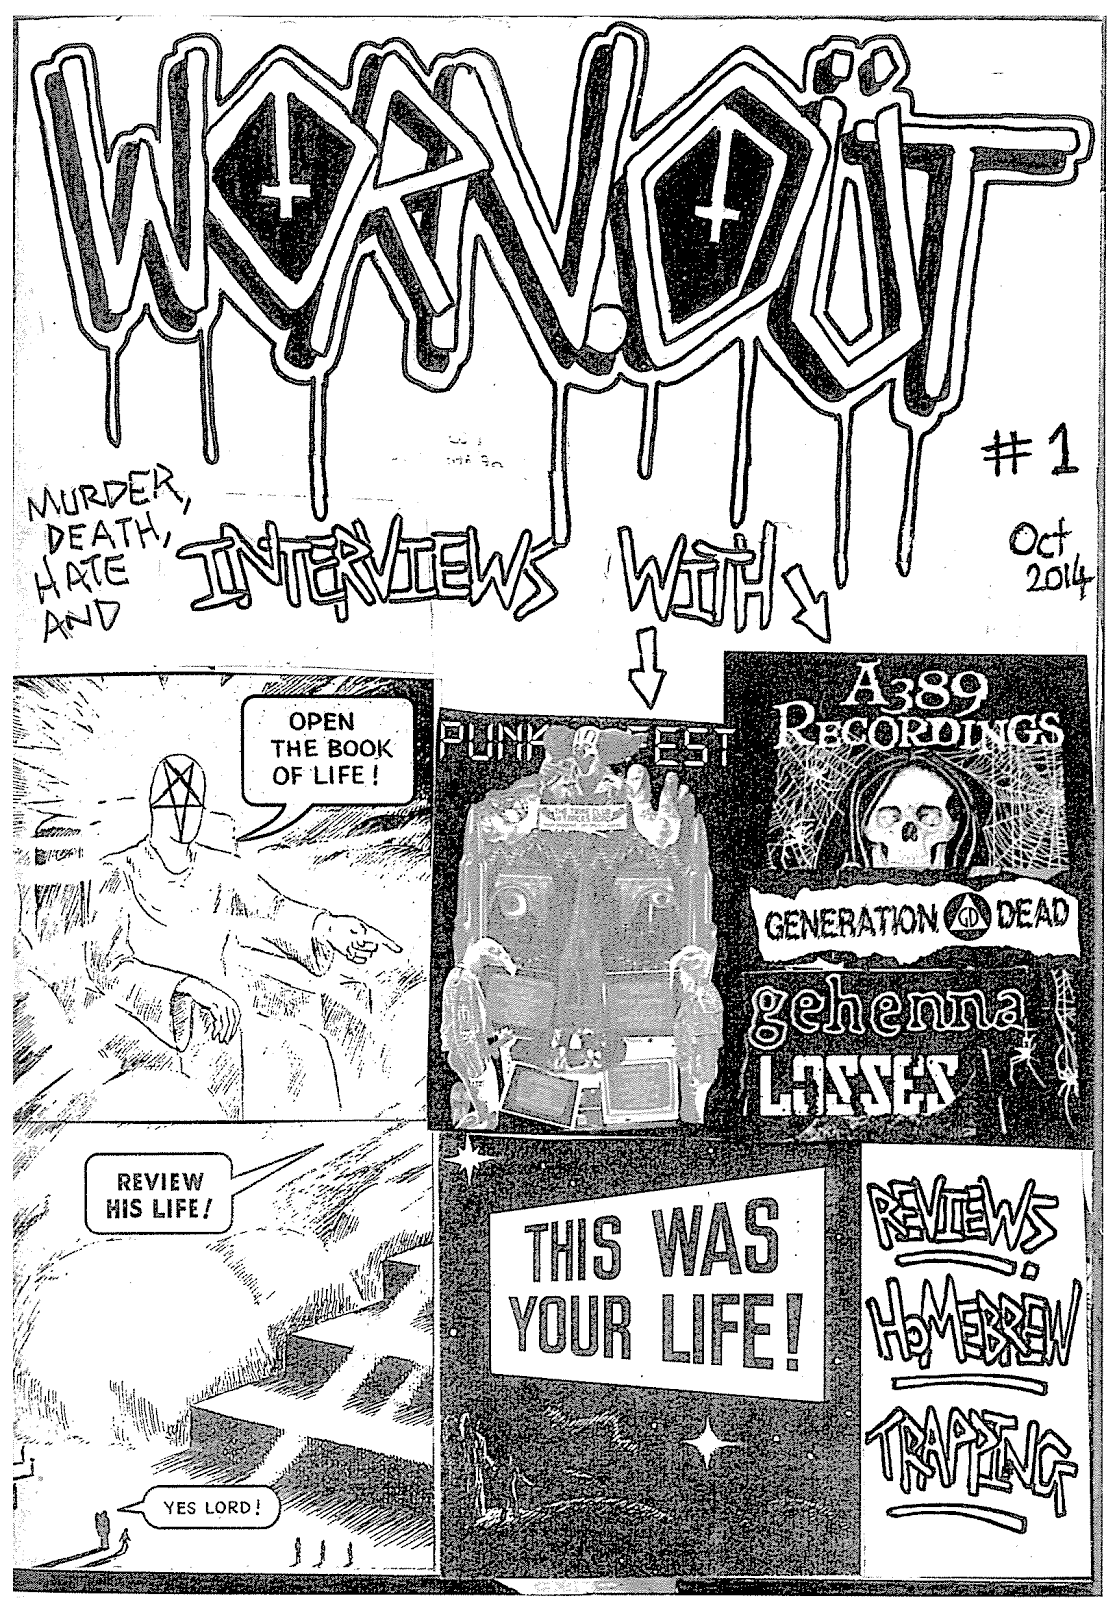 Worn Out Zine #1